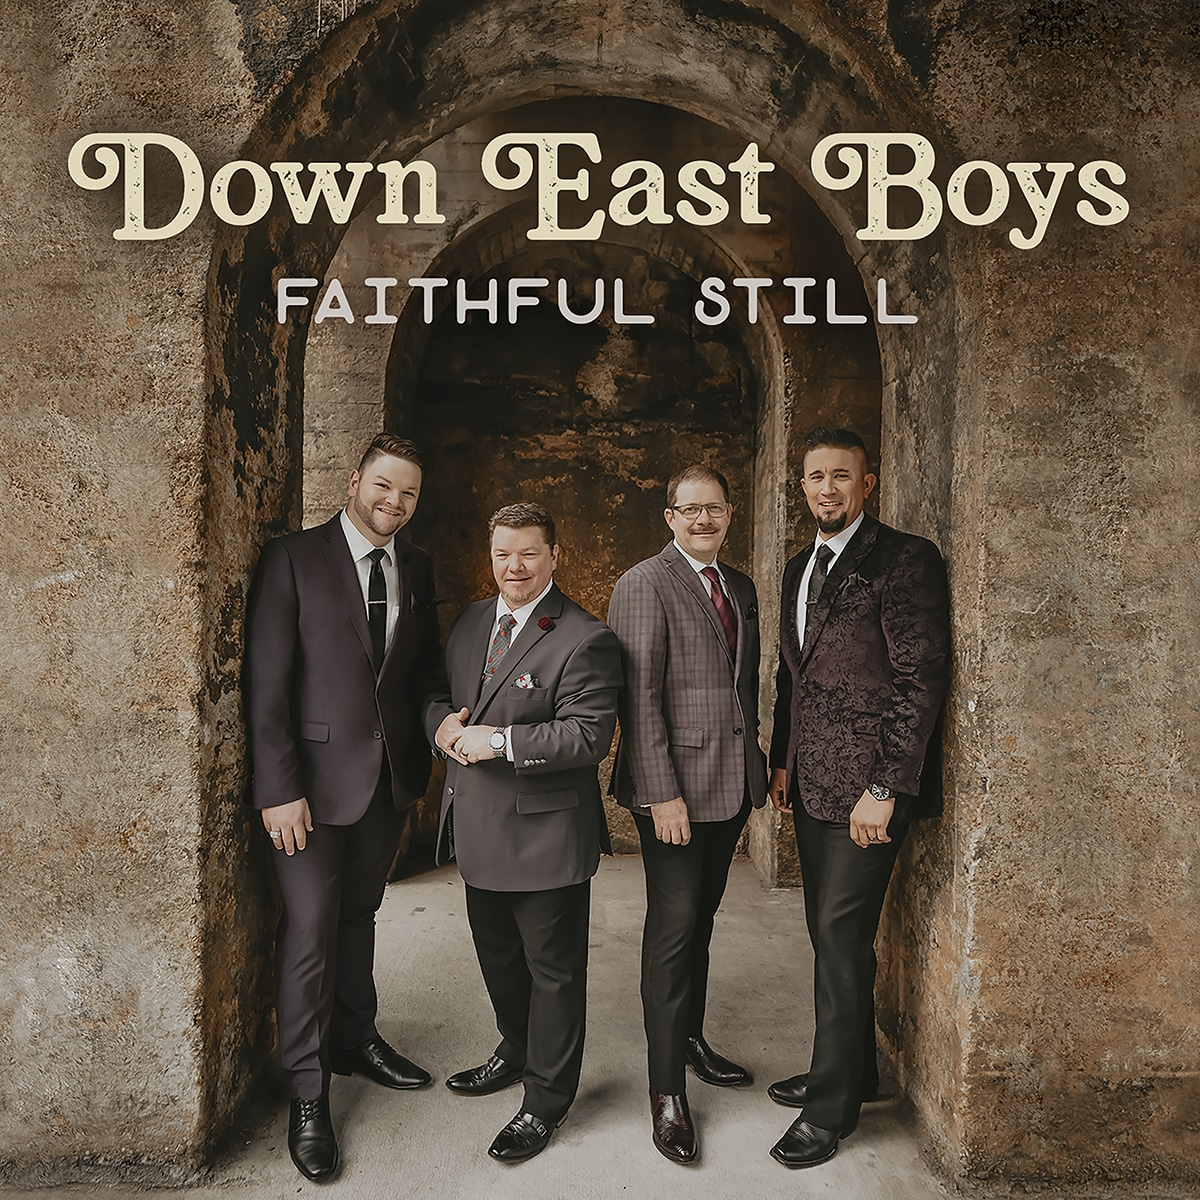 Down East Boys' cover for Faithful Still